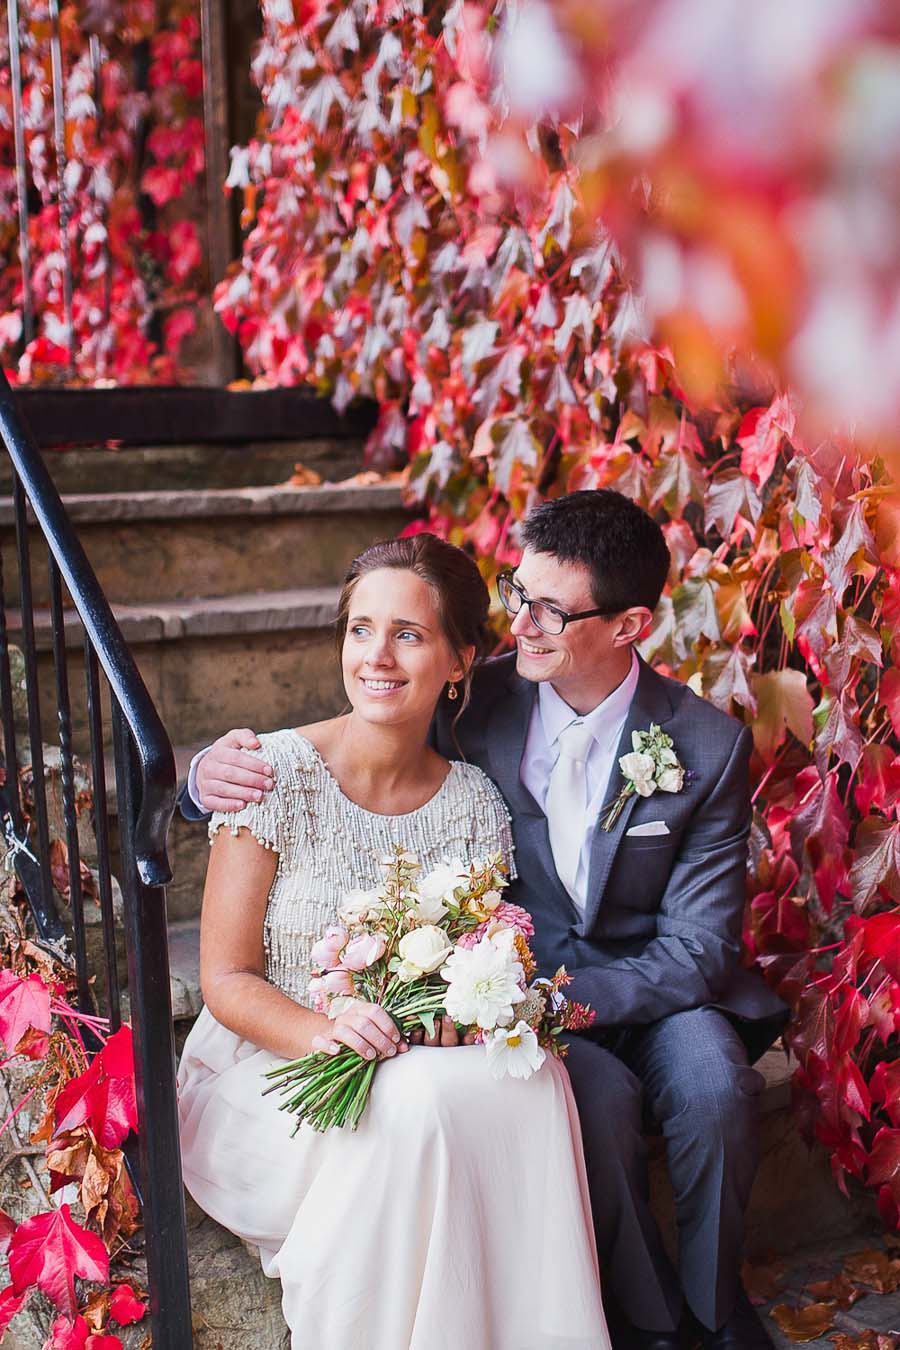 Beautiful Budget Wedding With Intricately Beaded Monsoon Wedding Dress: Hannah & Dan